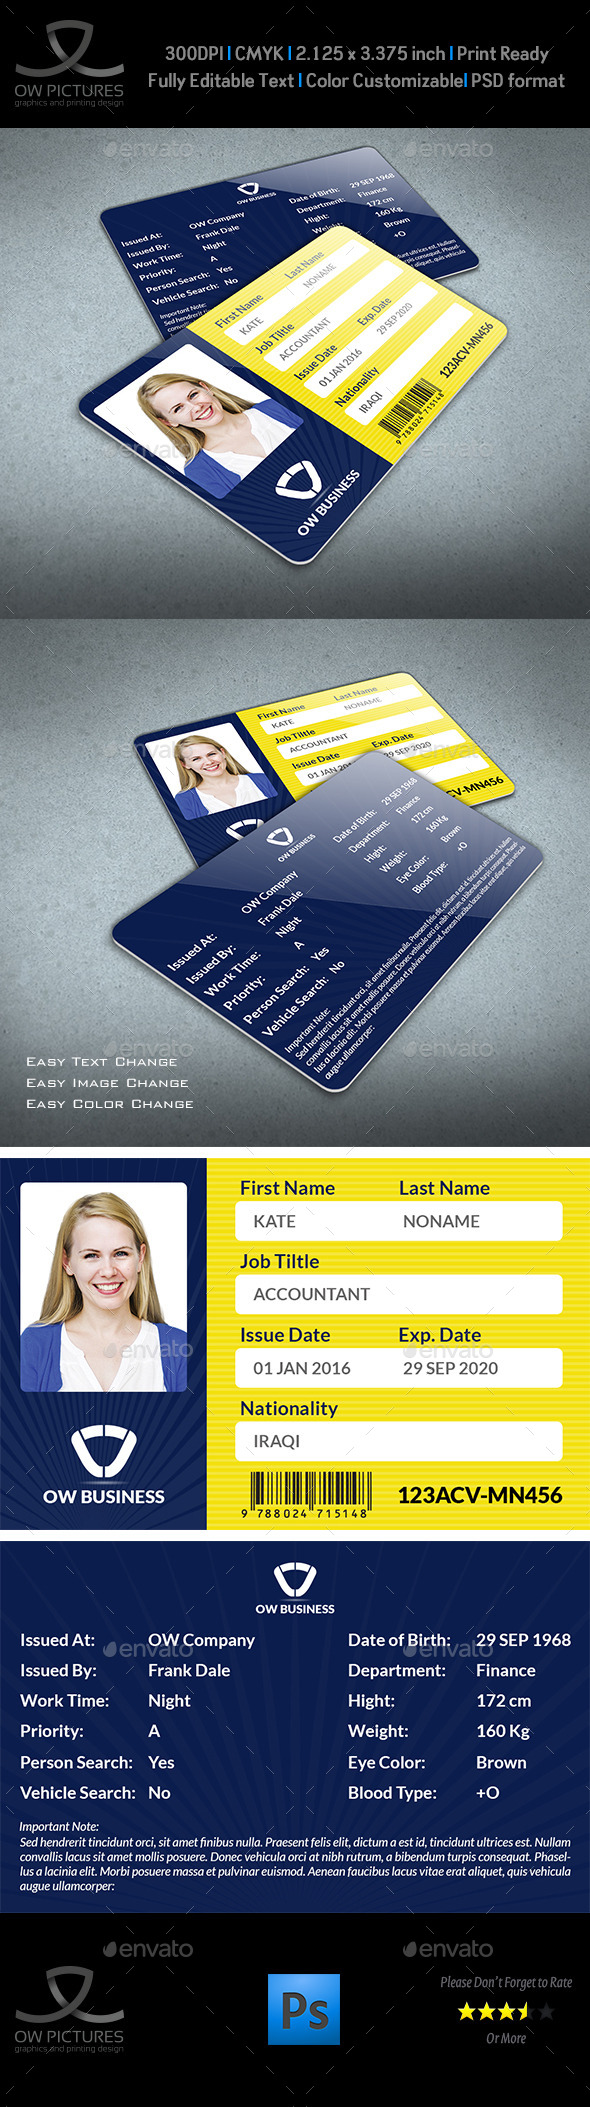 amp; Templates Card Id From Graphics Designs Graphicriver Template